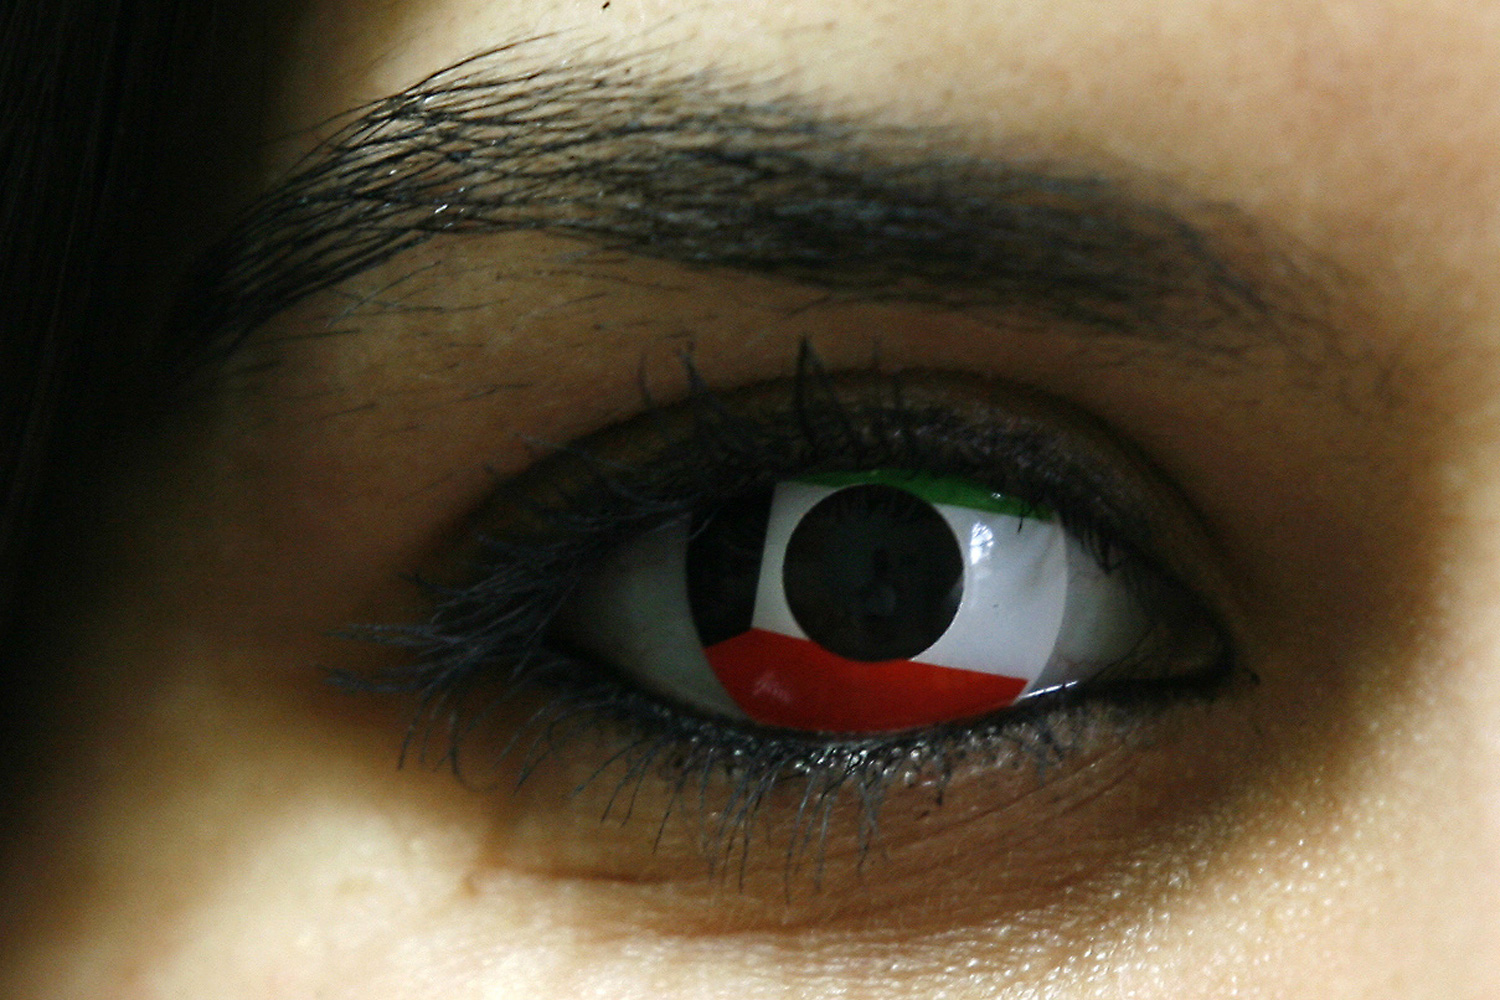 Feb. 24, 2012. A Kuwaiti woman wears a contact lens in the colors of her national flag in Kuwait City on the eve of the Gulf state's 51st Independence Day, and ahead of the 21st anniversary of the end of the Gulf War with the liberation of Kuwait from Iraqi occupation.